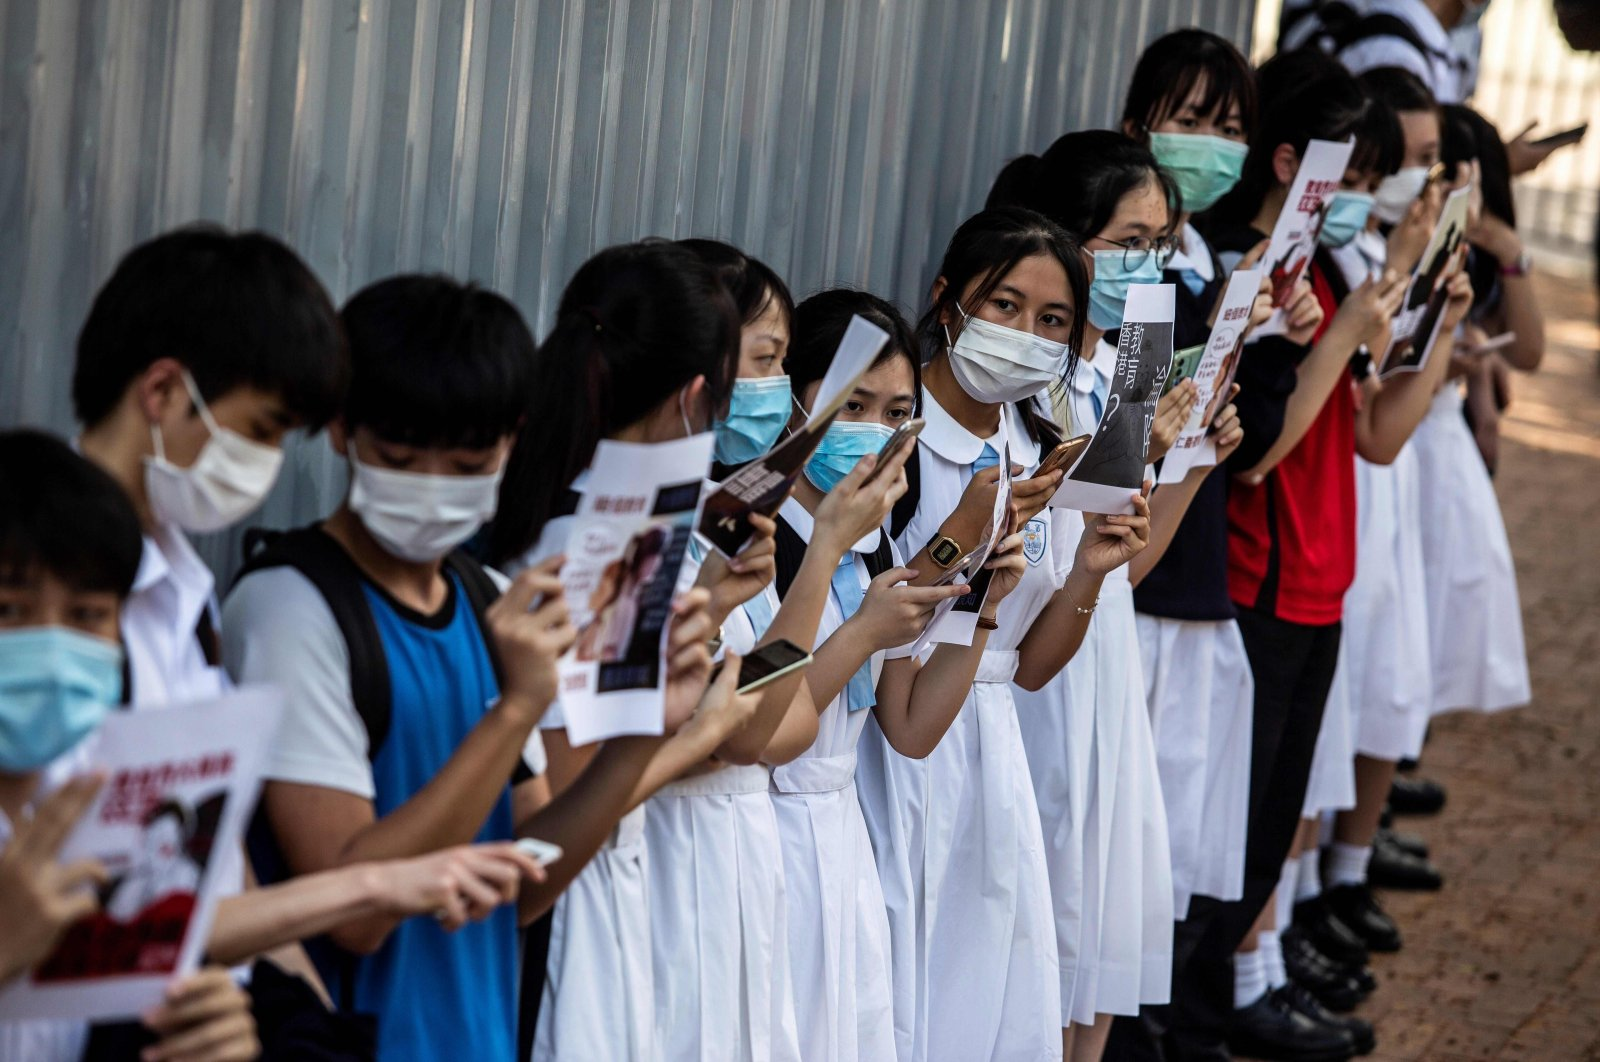 School students hold signs during a pro-democracy protest near their school in Hong Kong, June 12, 2020. (AFP Photo)